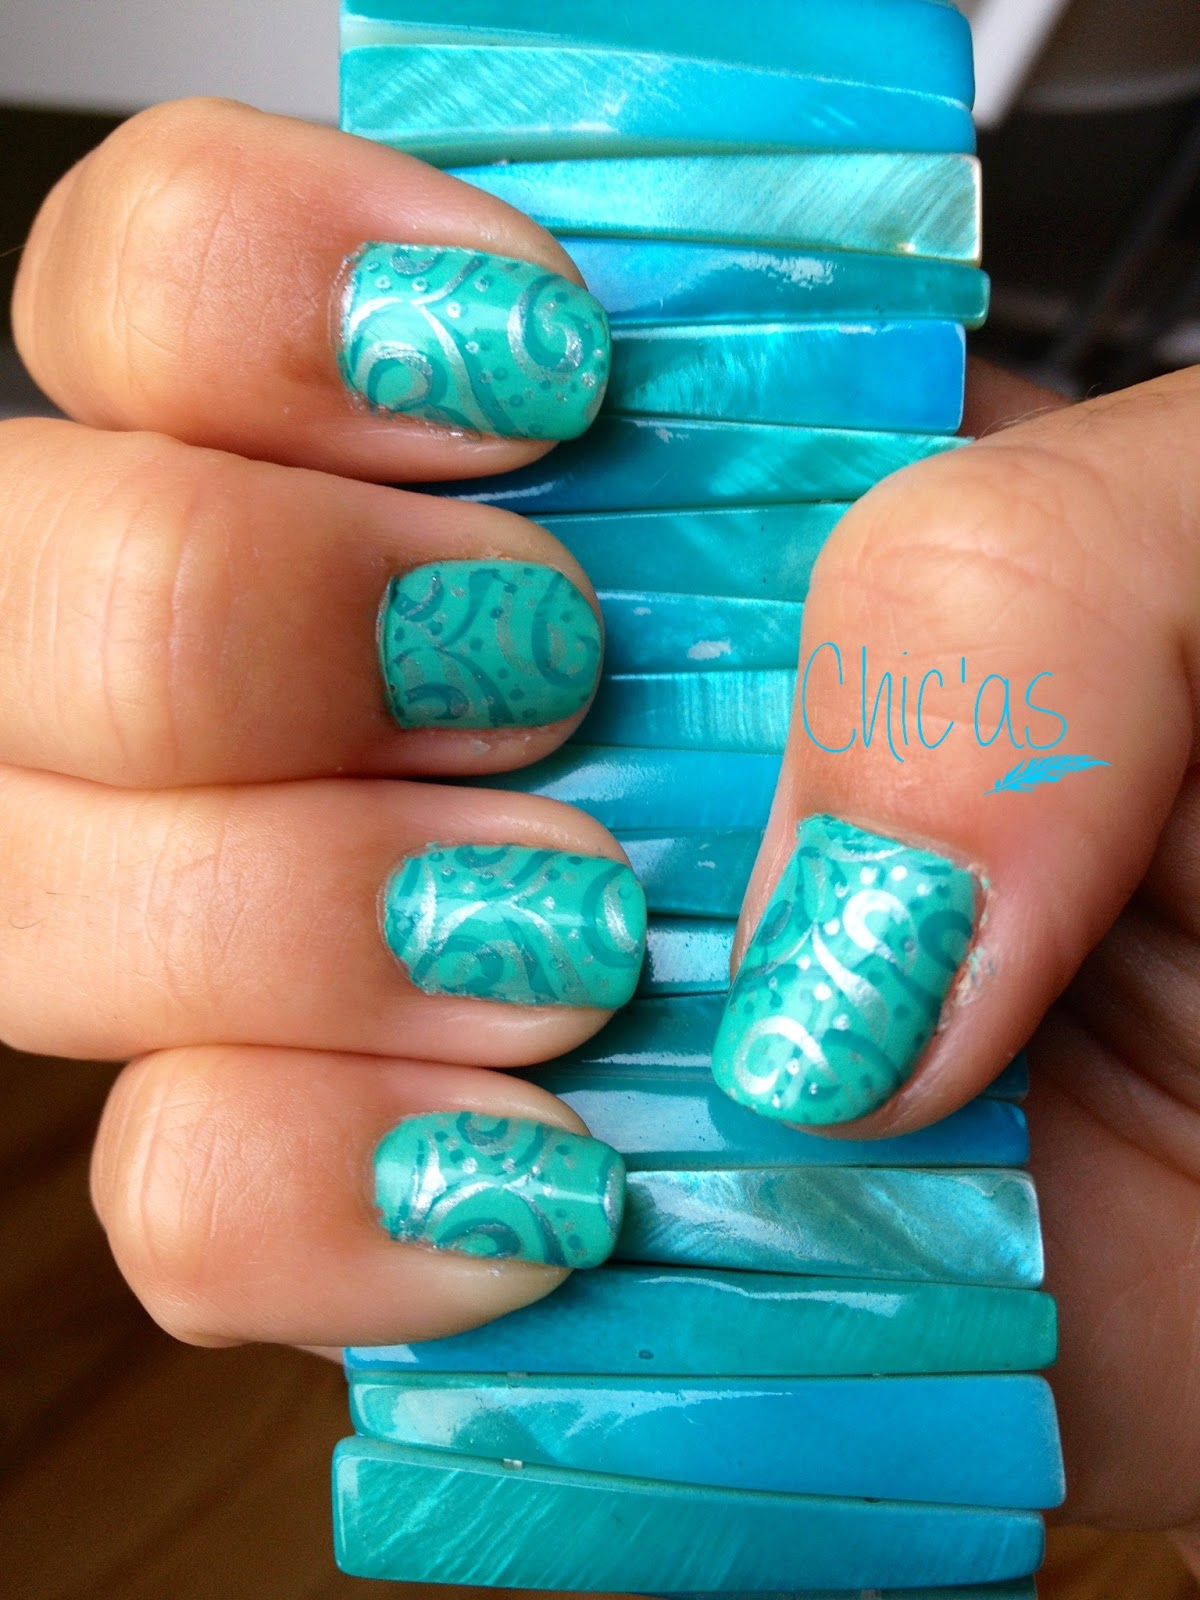 Chic 39 as stamping nail art turquoise - Ongle d ete ...